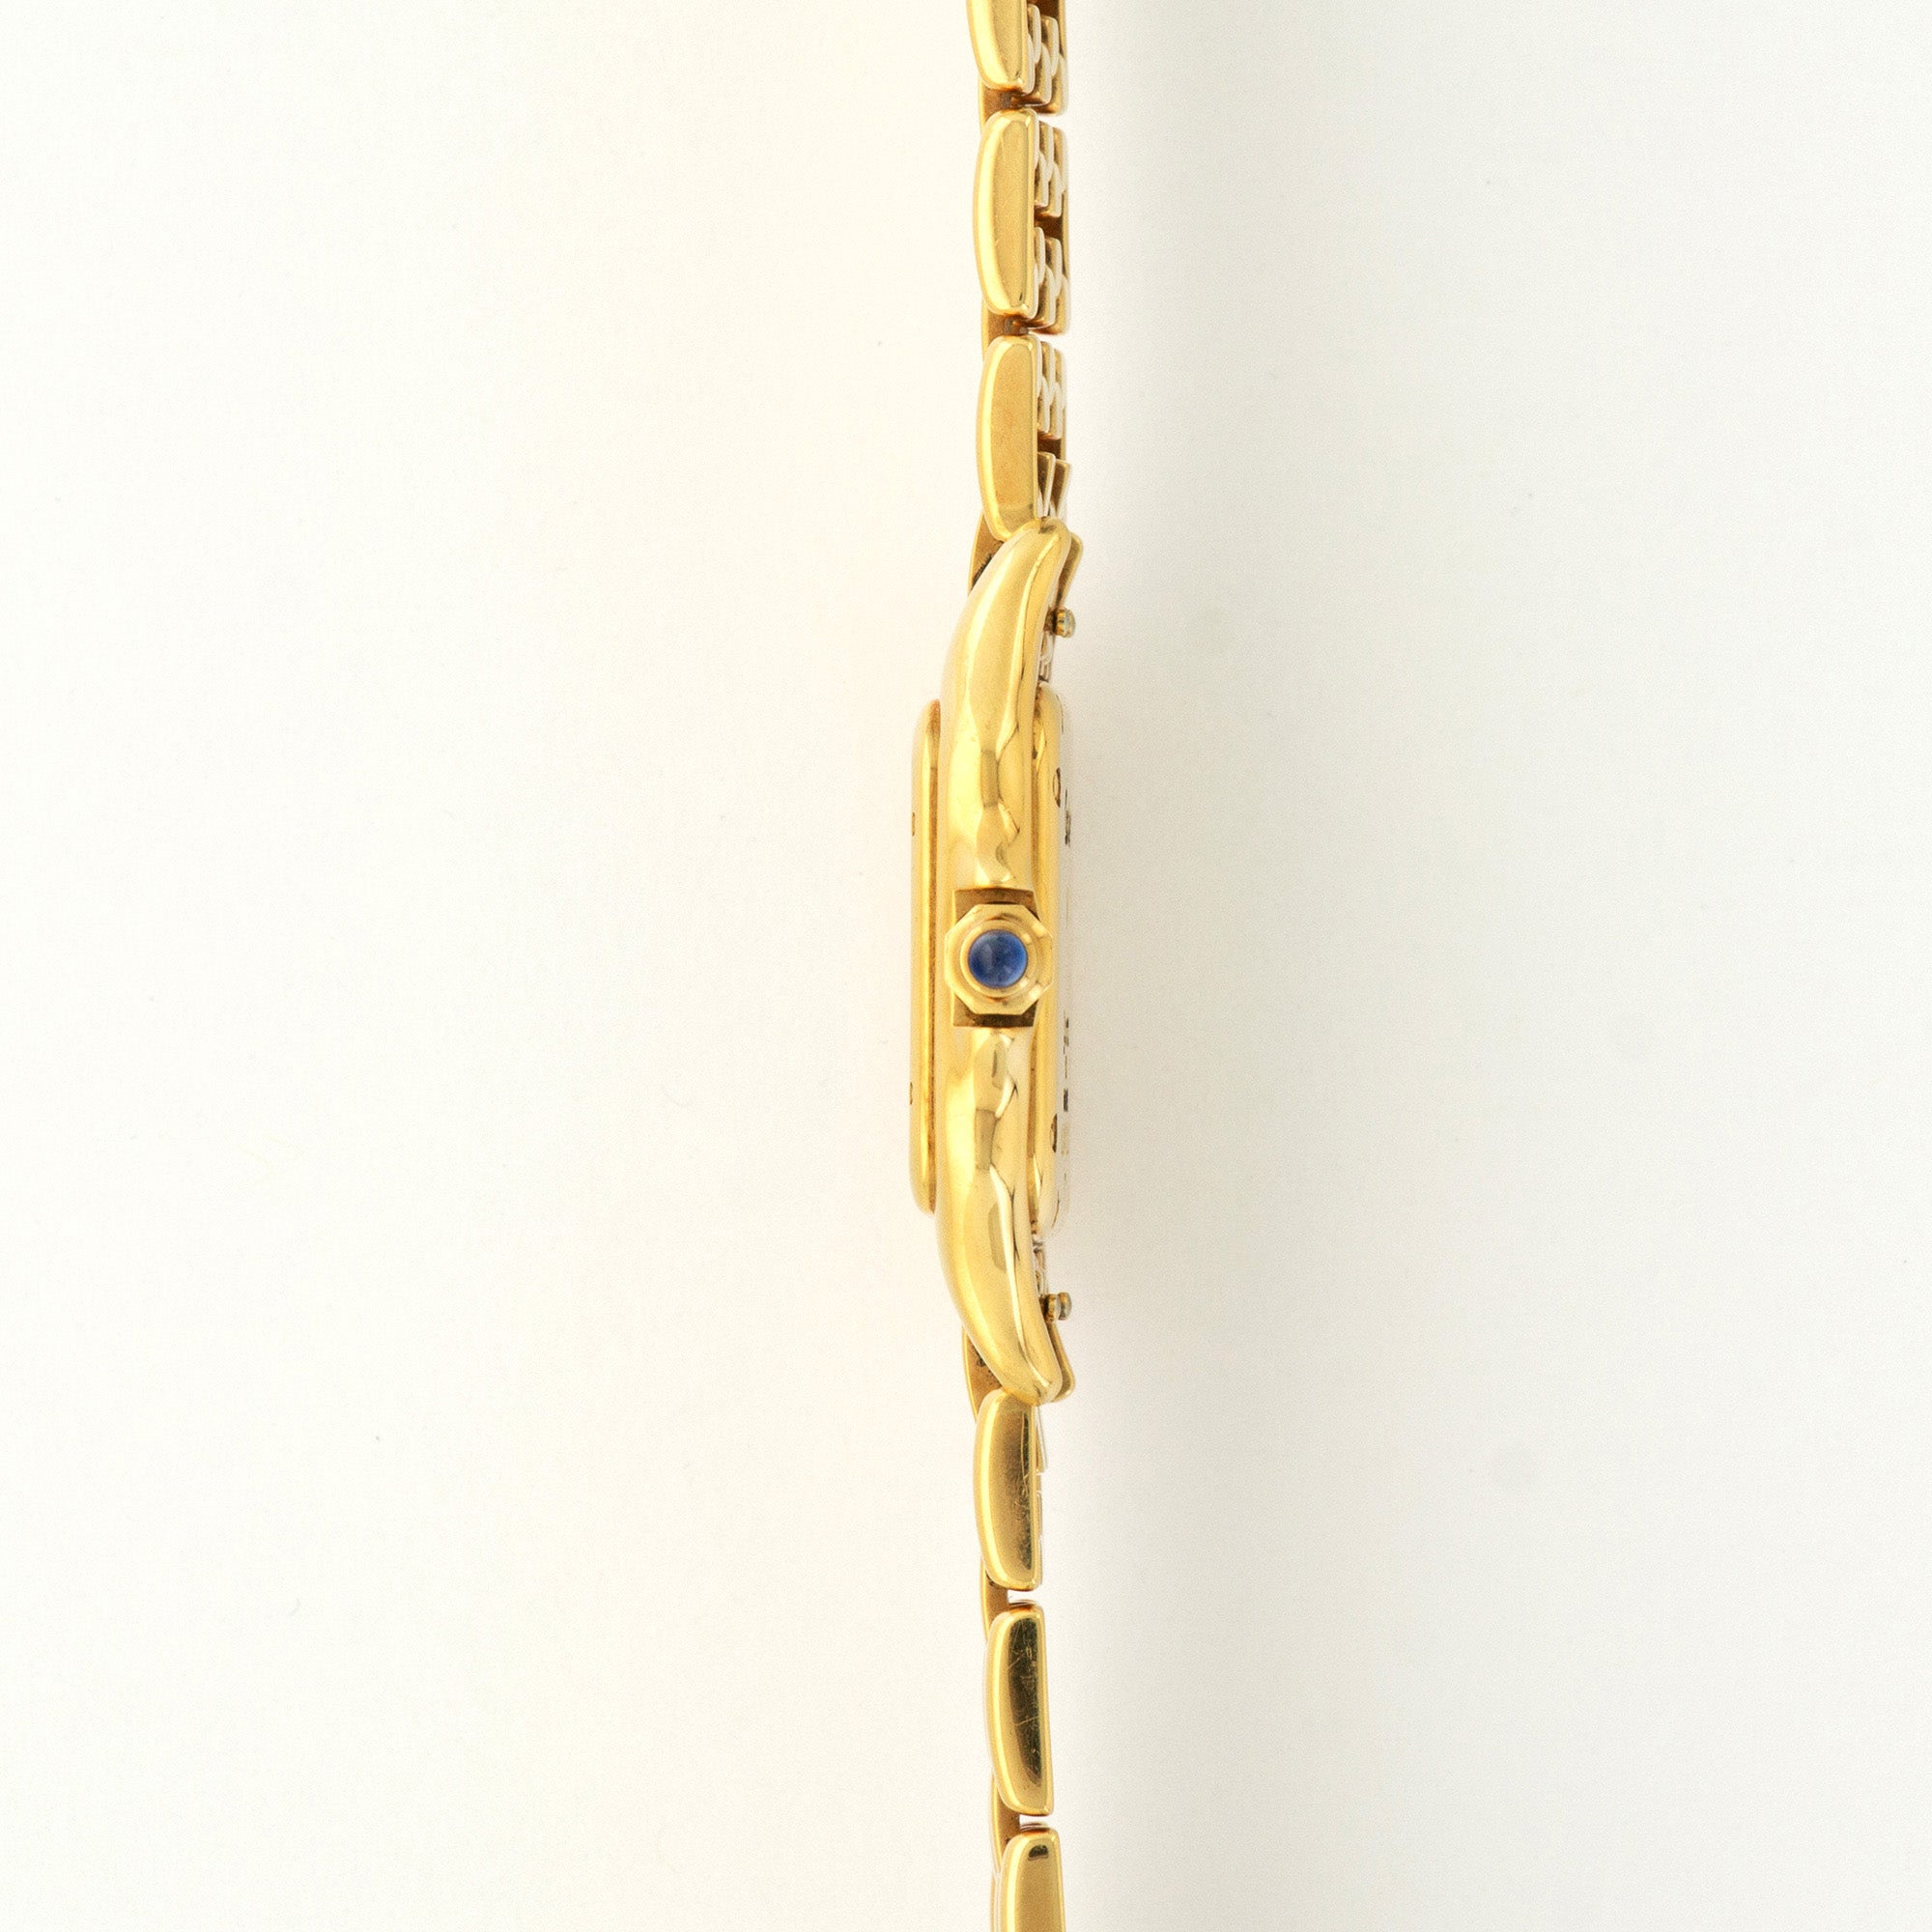 Cartier Panthere N/A 18k YG  Excellent Ladies 18k YG Cream 25mm Quartz 1990s Yellow Gold Bracelet Paper